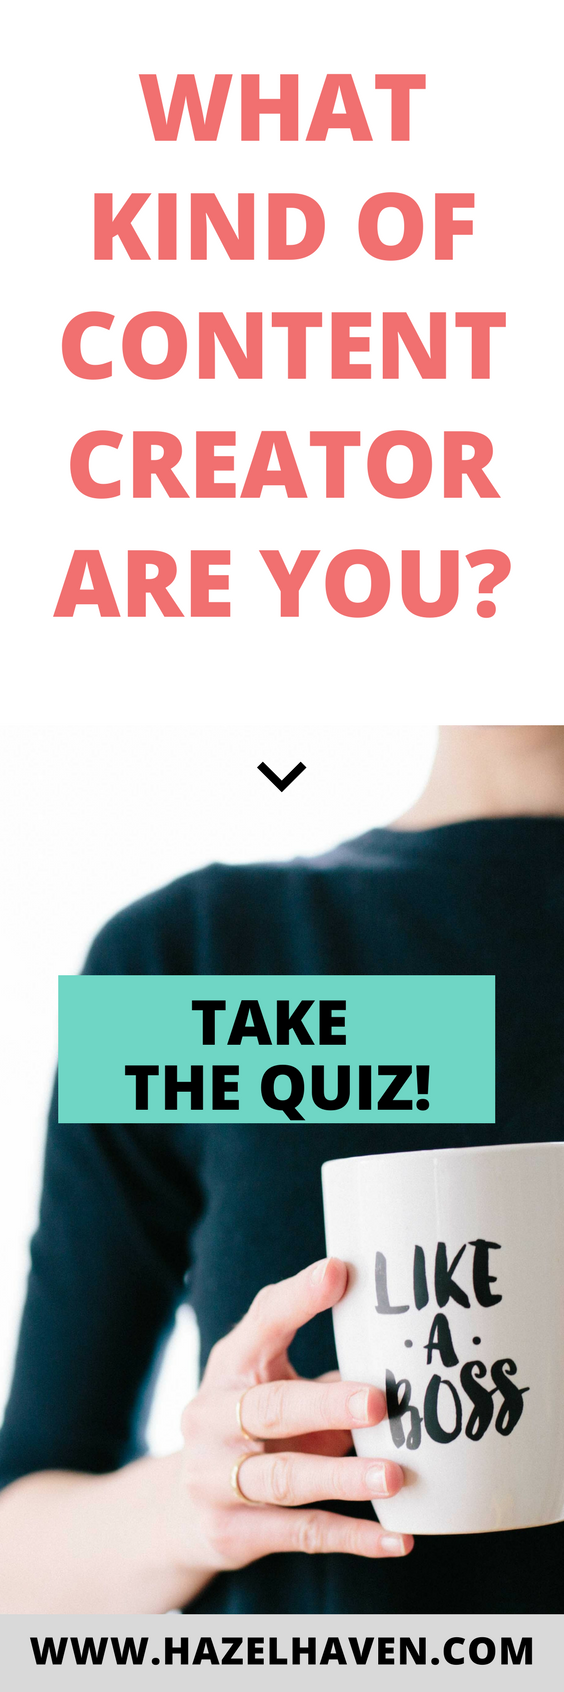 You know you want to create more content but you're not quite sure where to start..find our your content marketing style with this free quiz! #contentmarketing #blogger #onlinemarketing #entrepreneurship